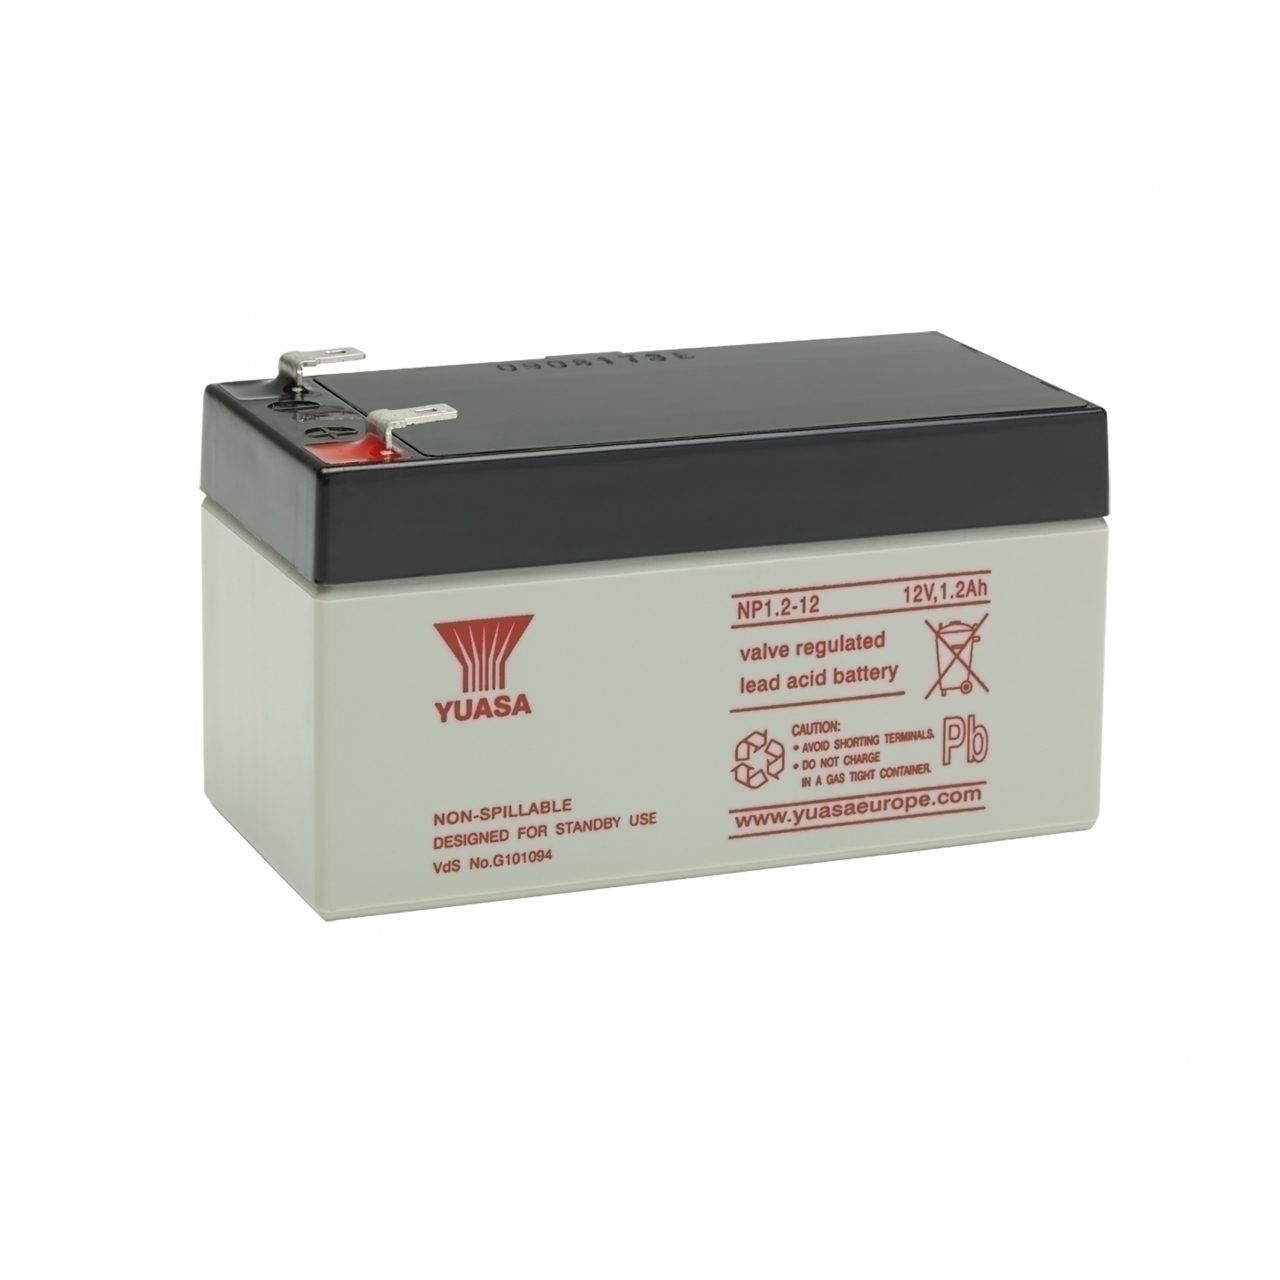 NP1.2-12 12V 1.2AH Lead Acid Battery